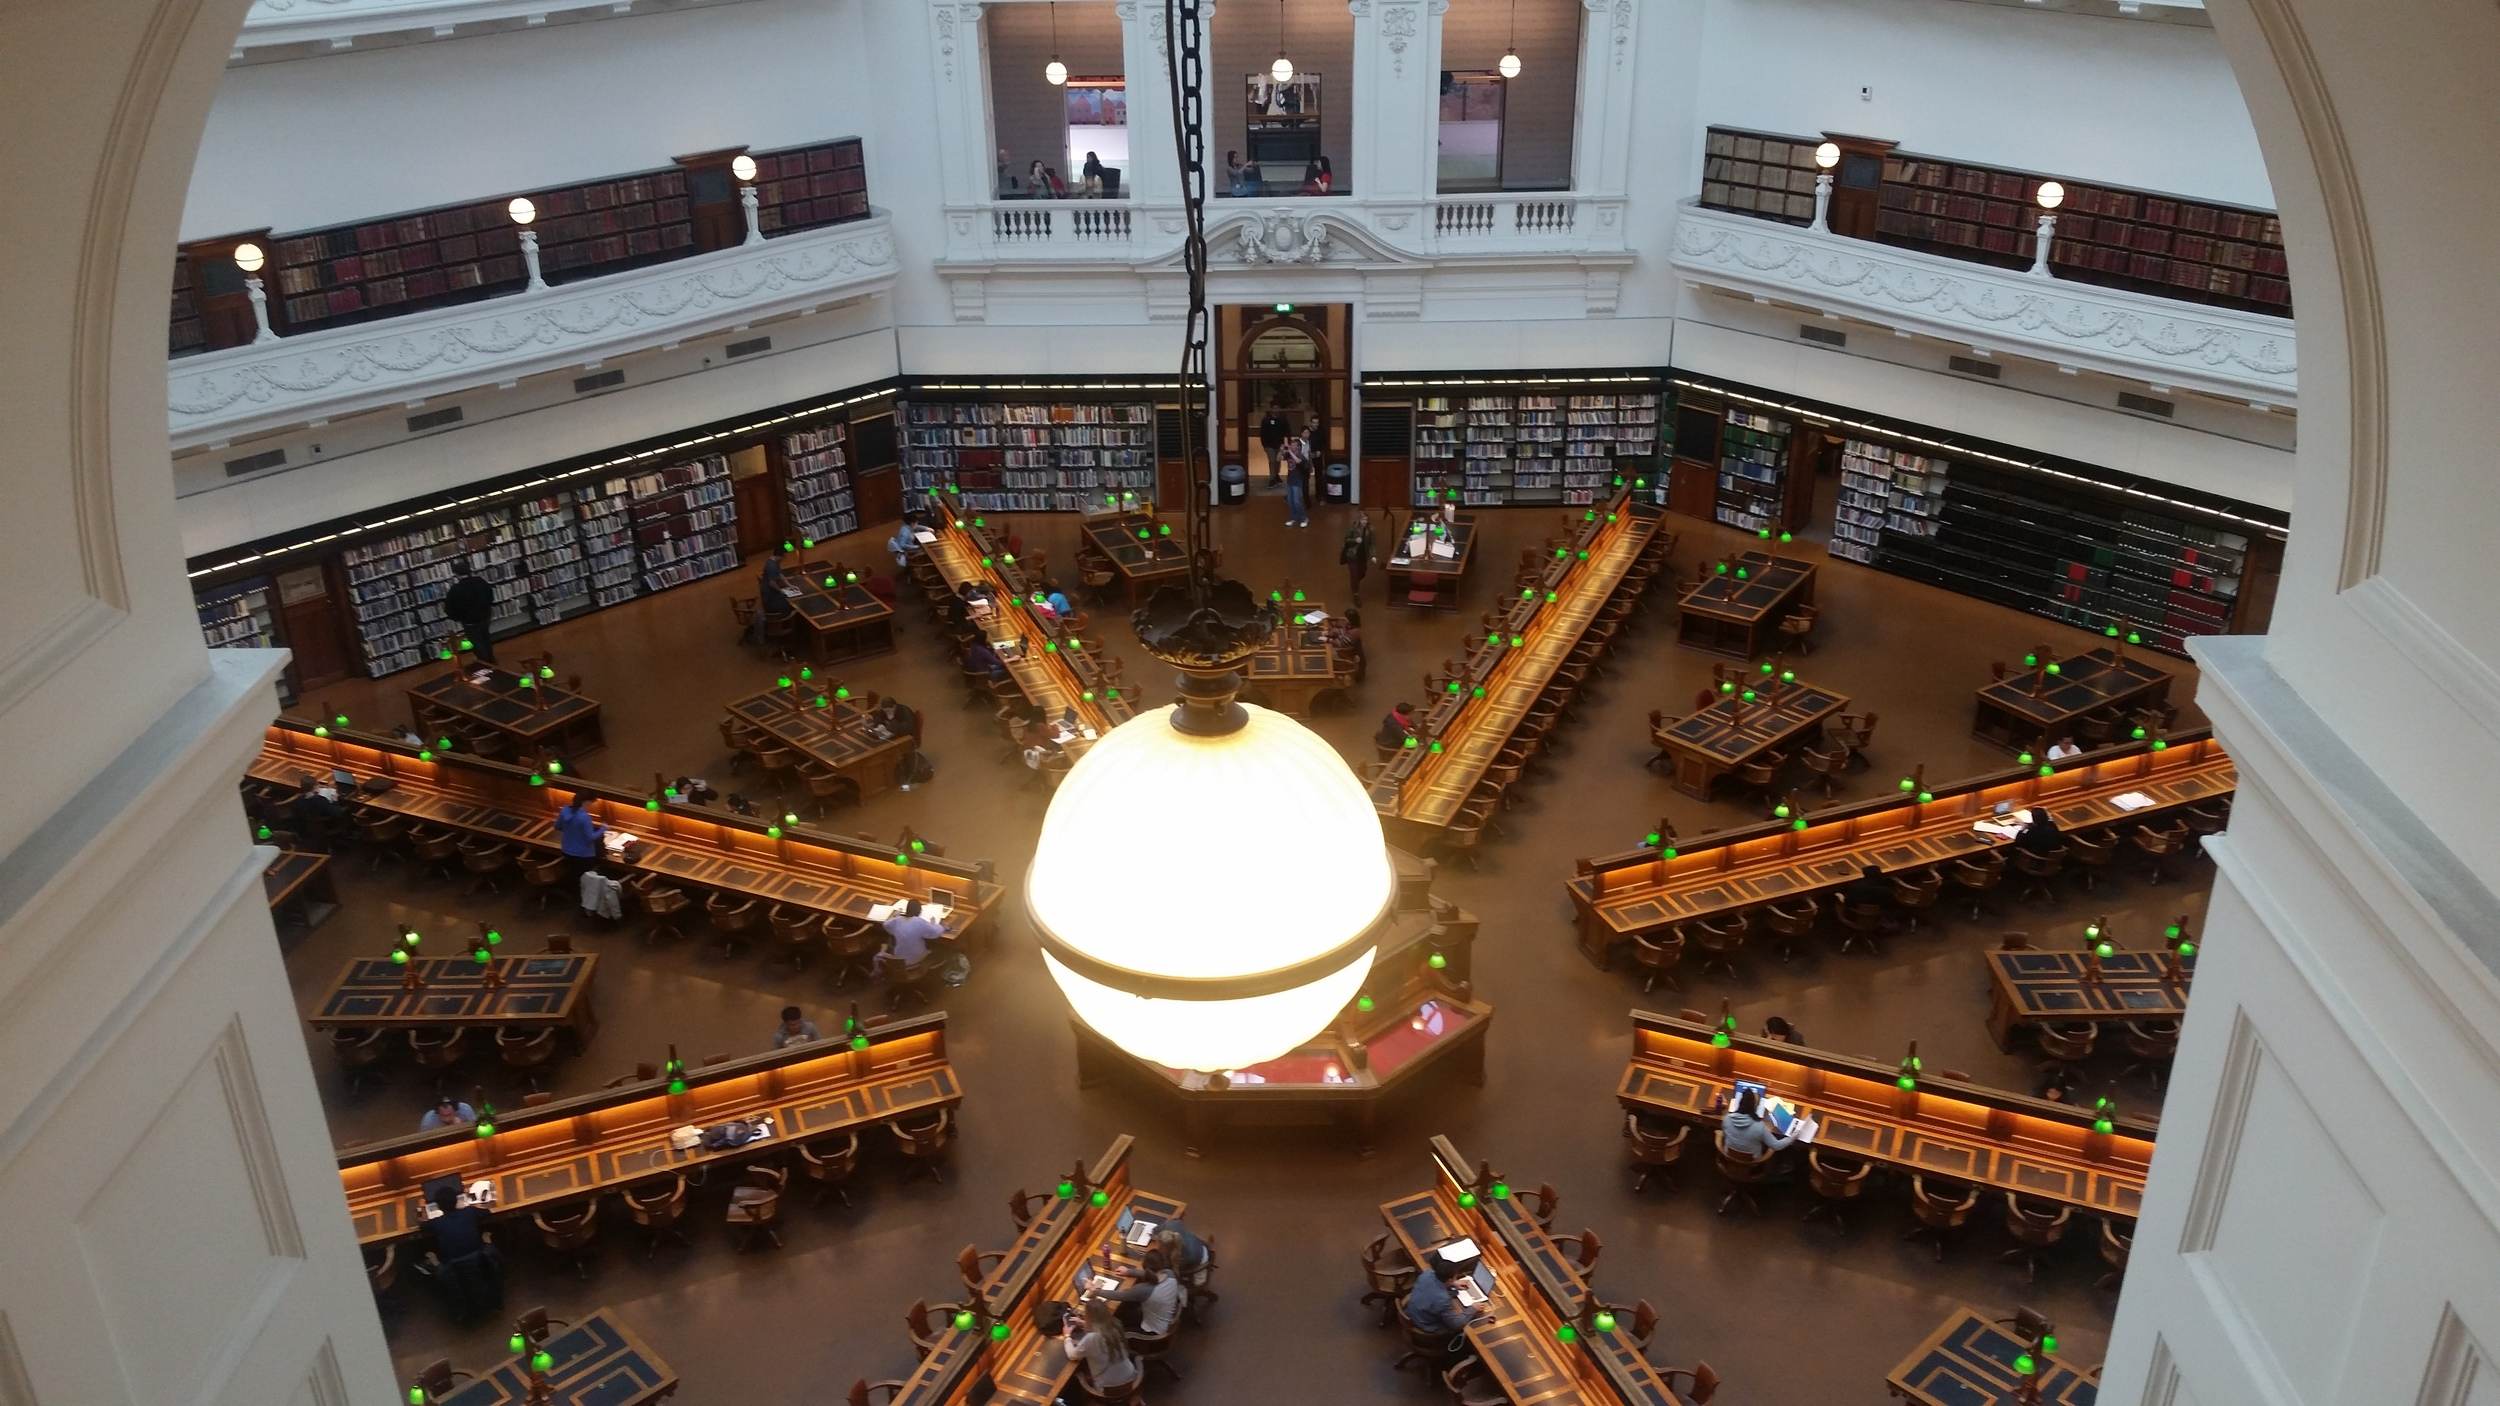 Neoclassical architecture in the State Library of Victoria.